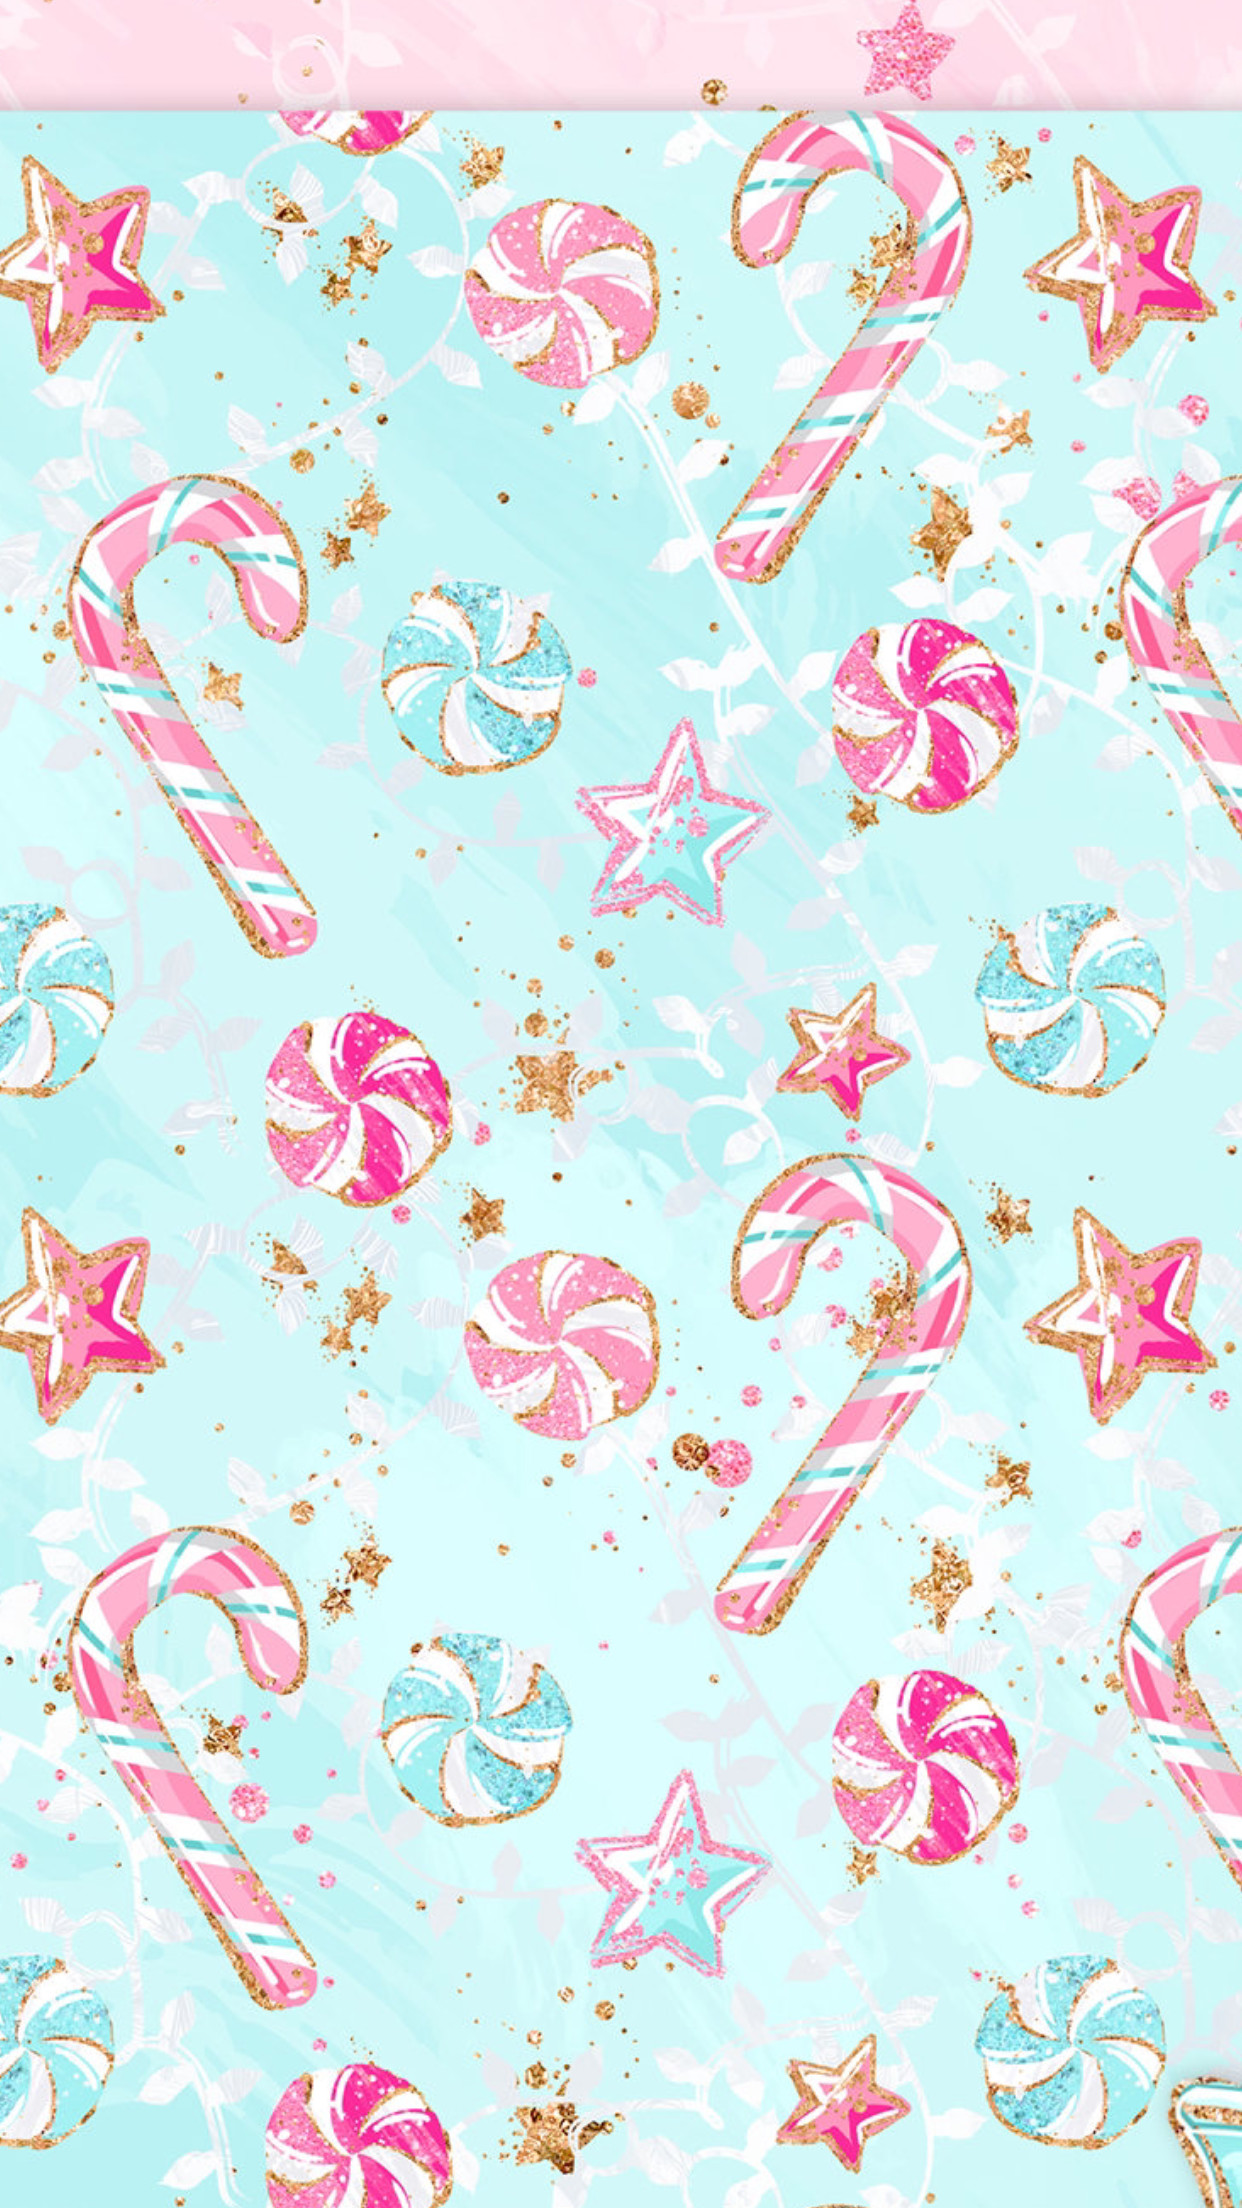 Res: 1242x2208, Christmas candy cane mints stars